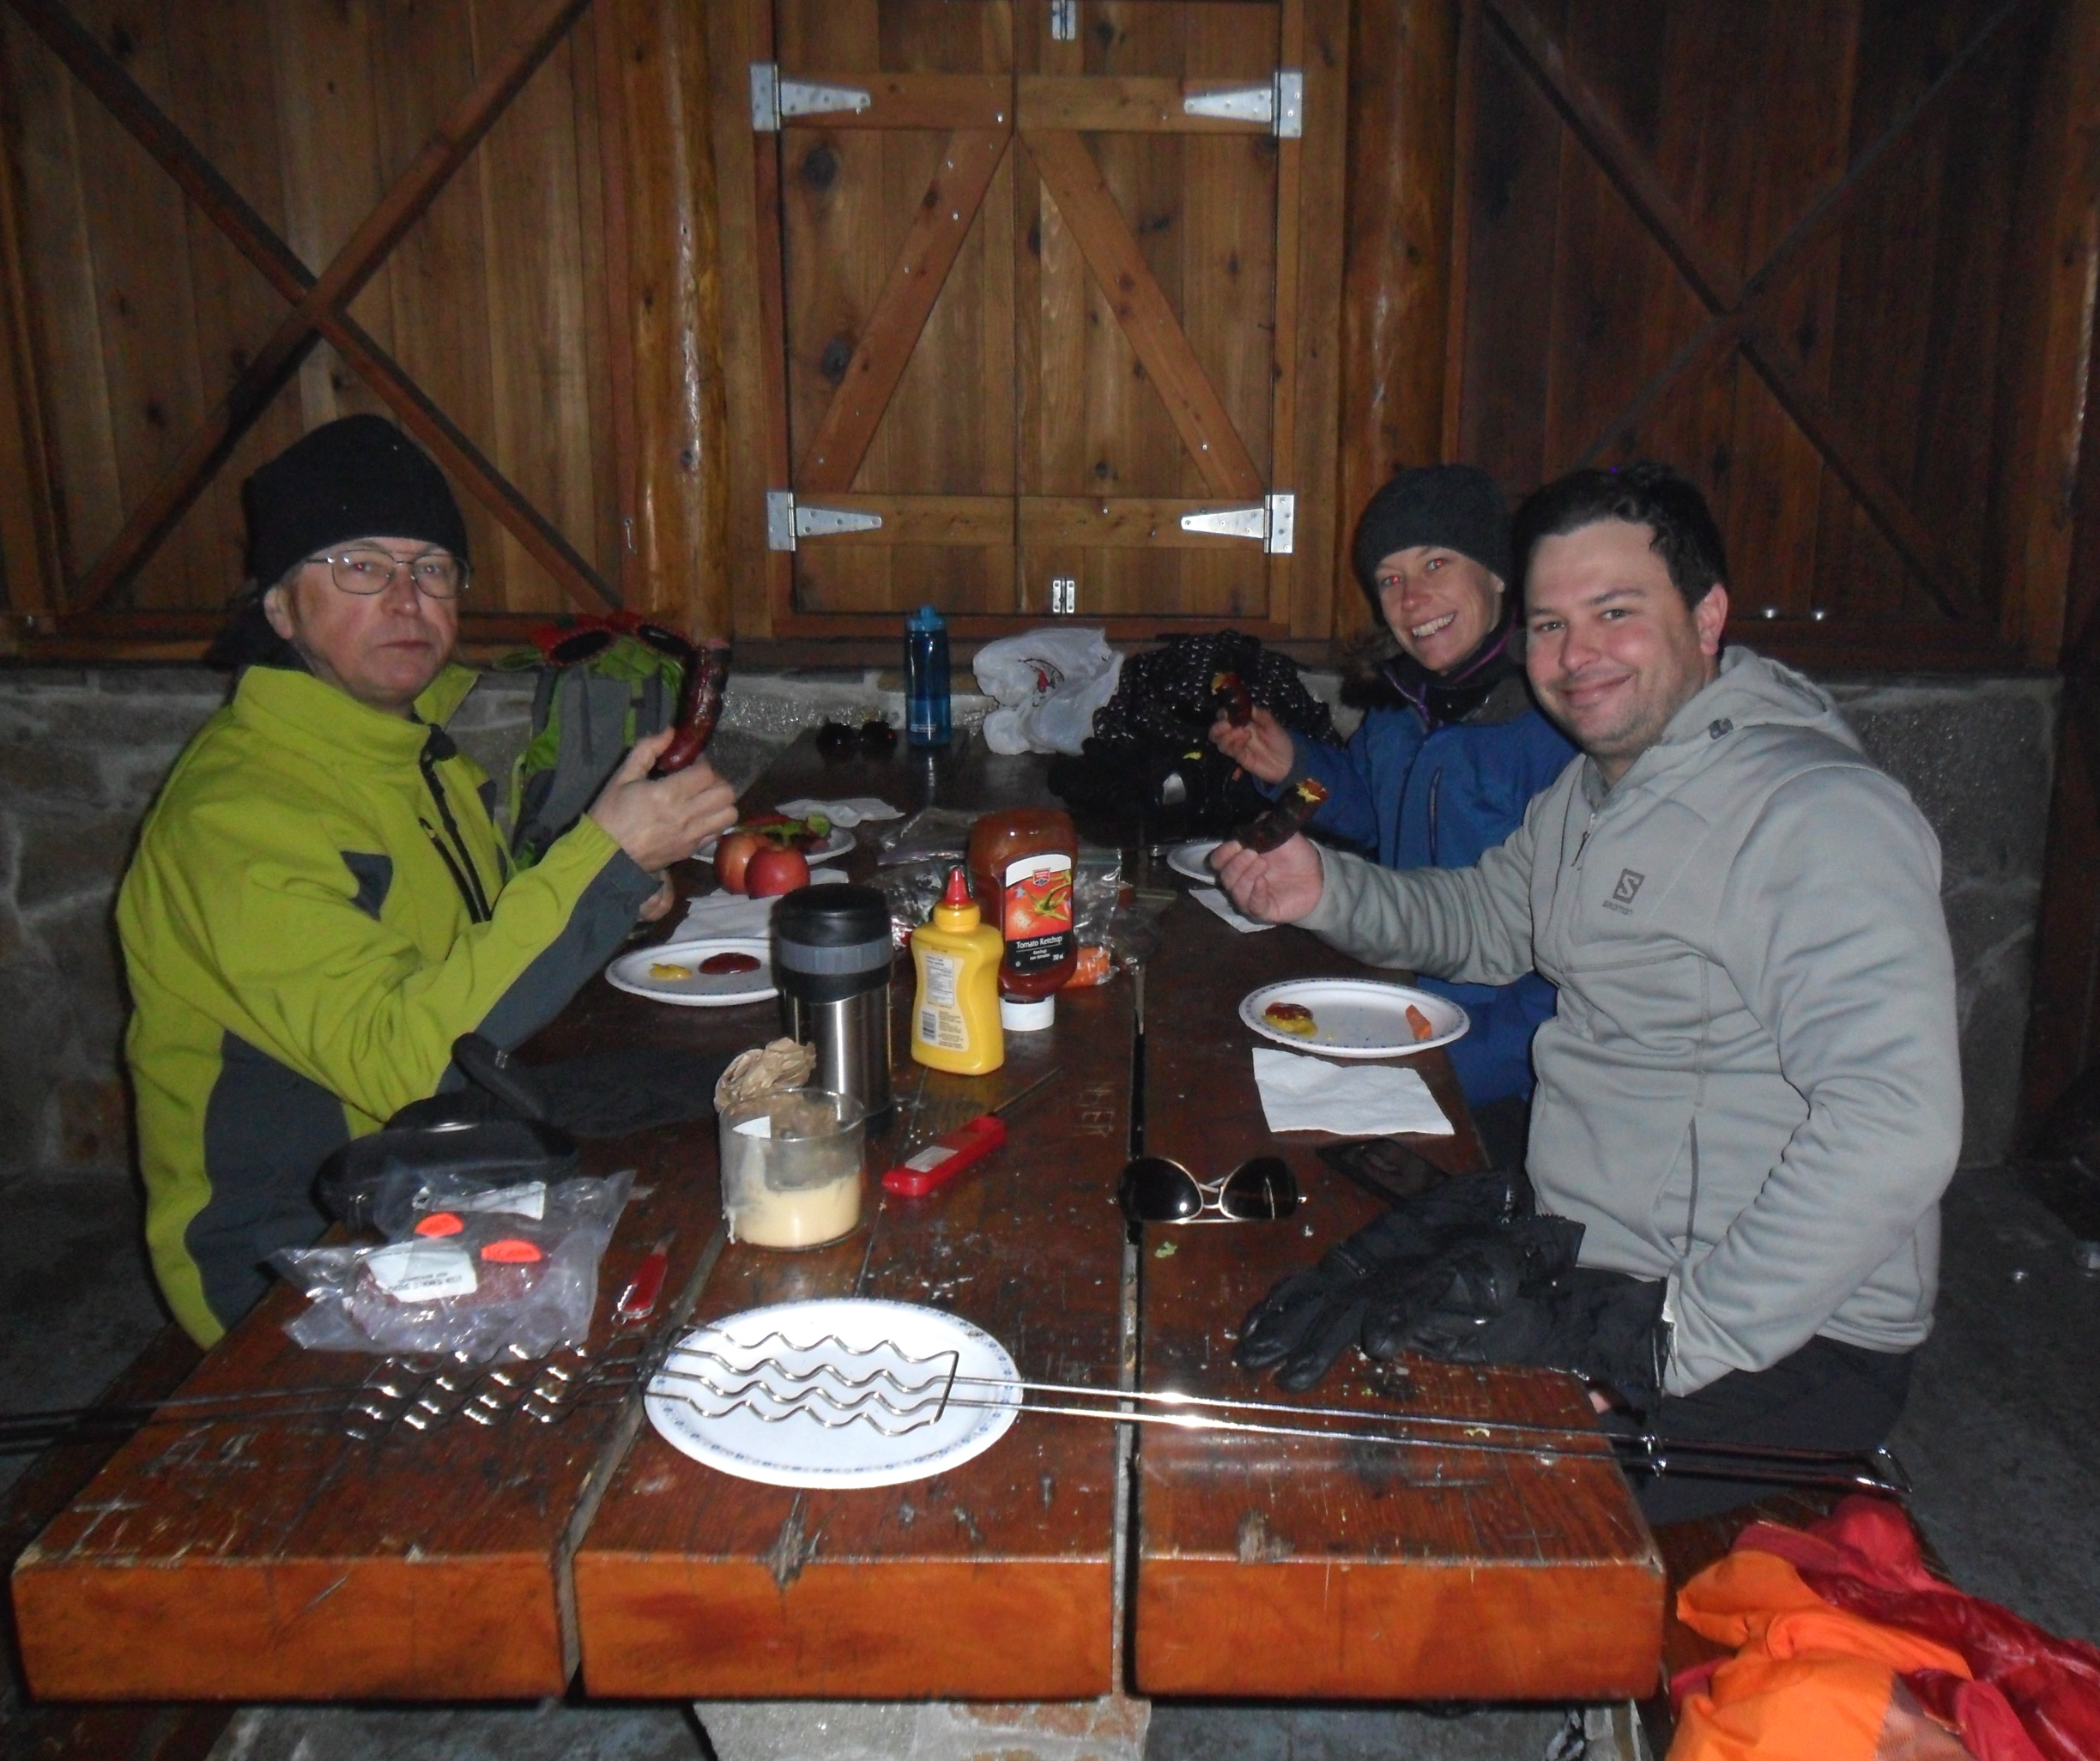 Hot lunch in the cabin